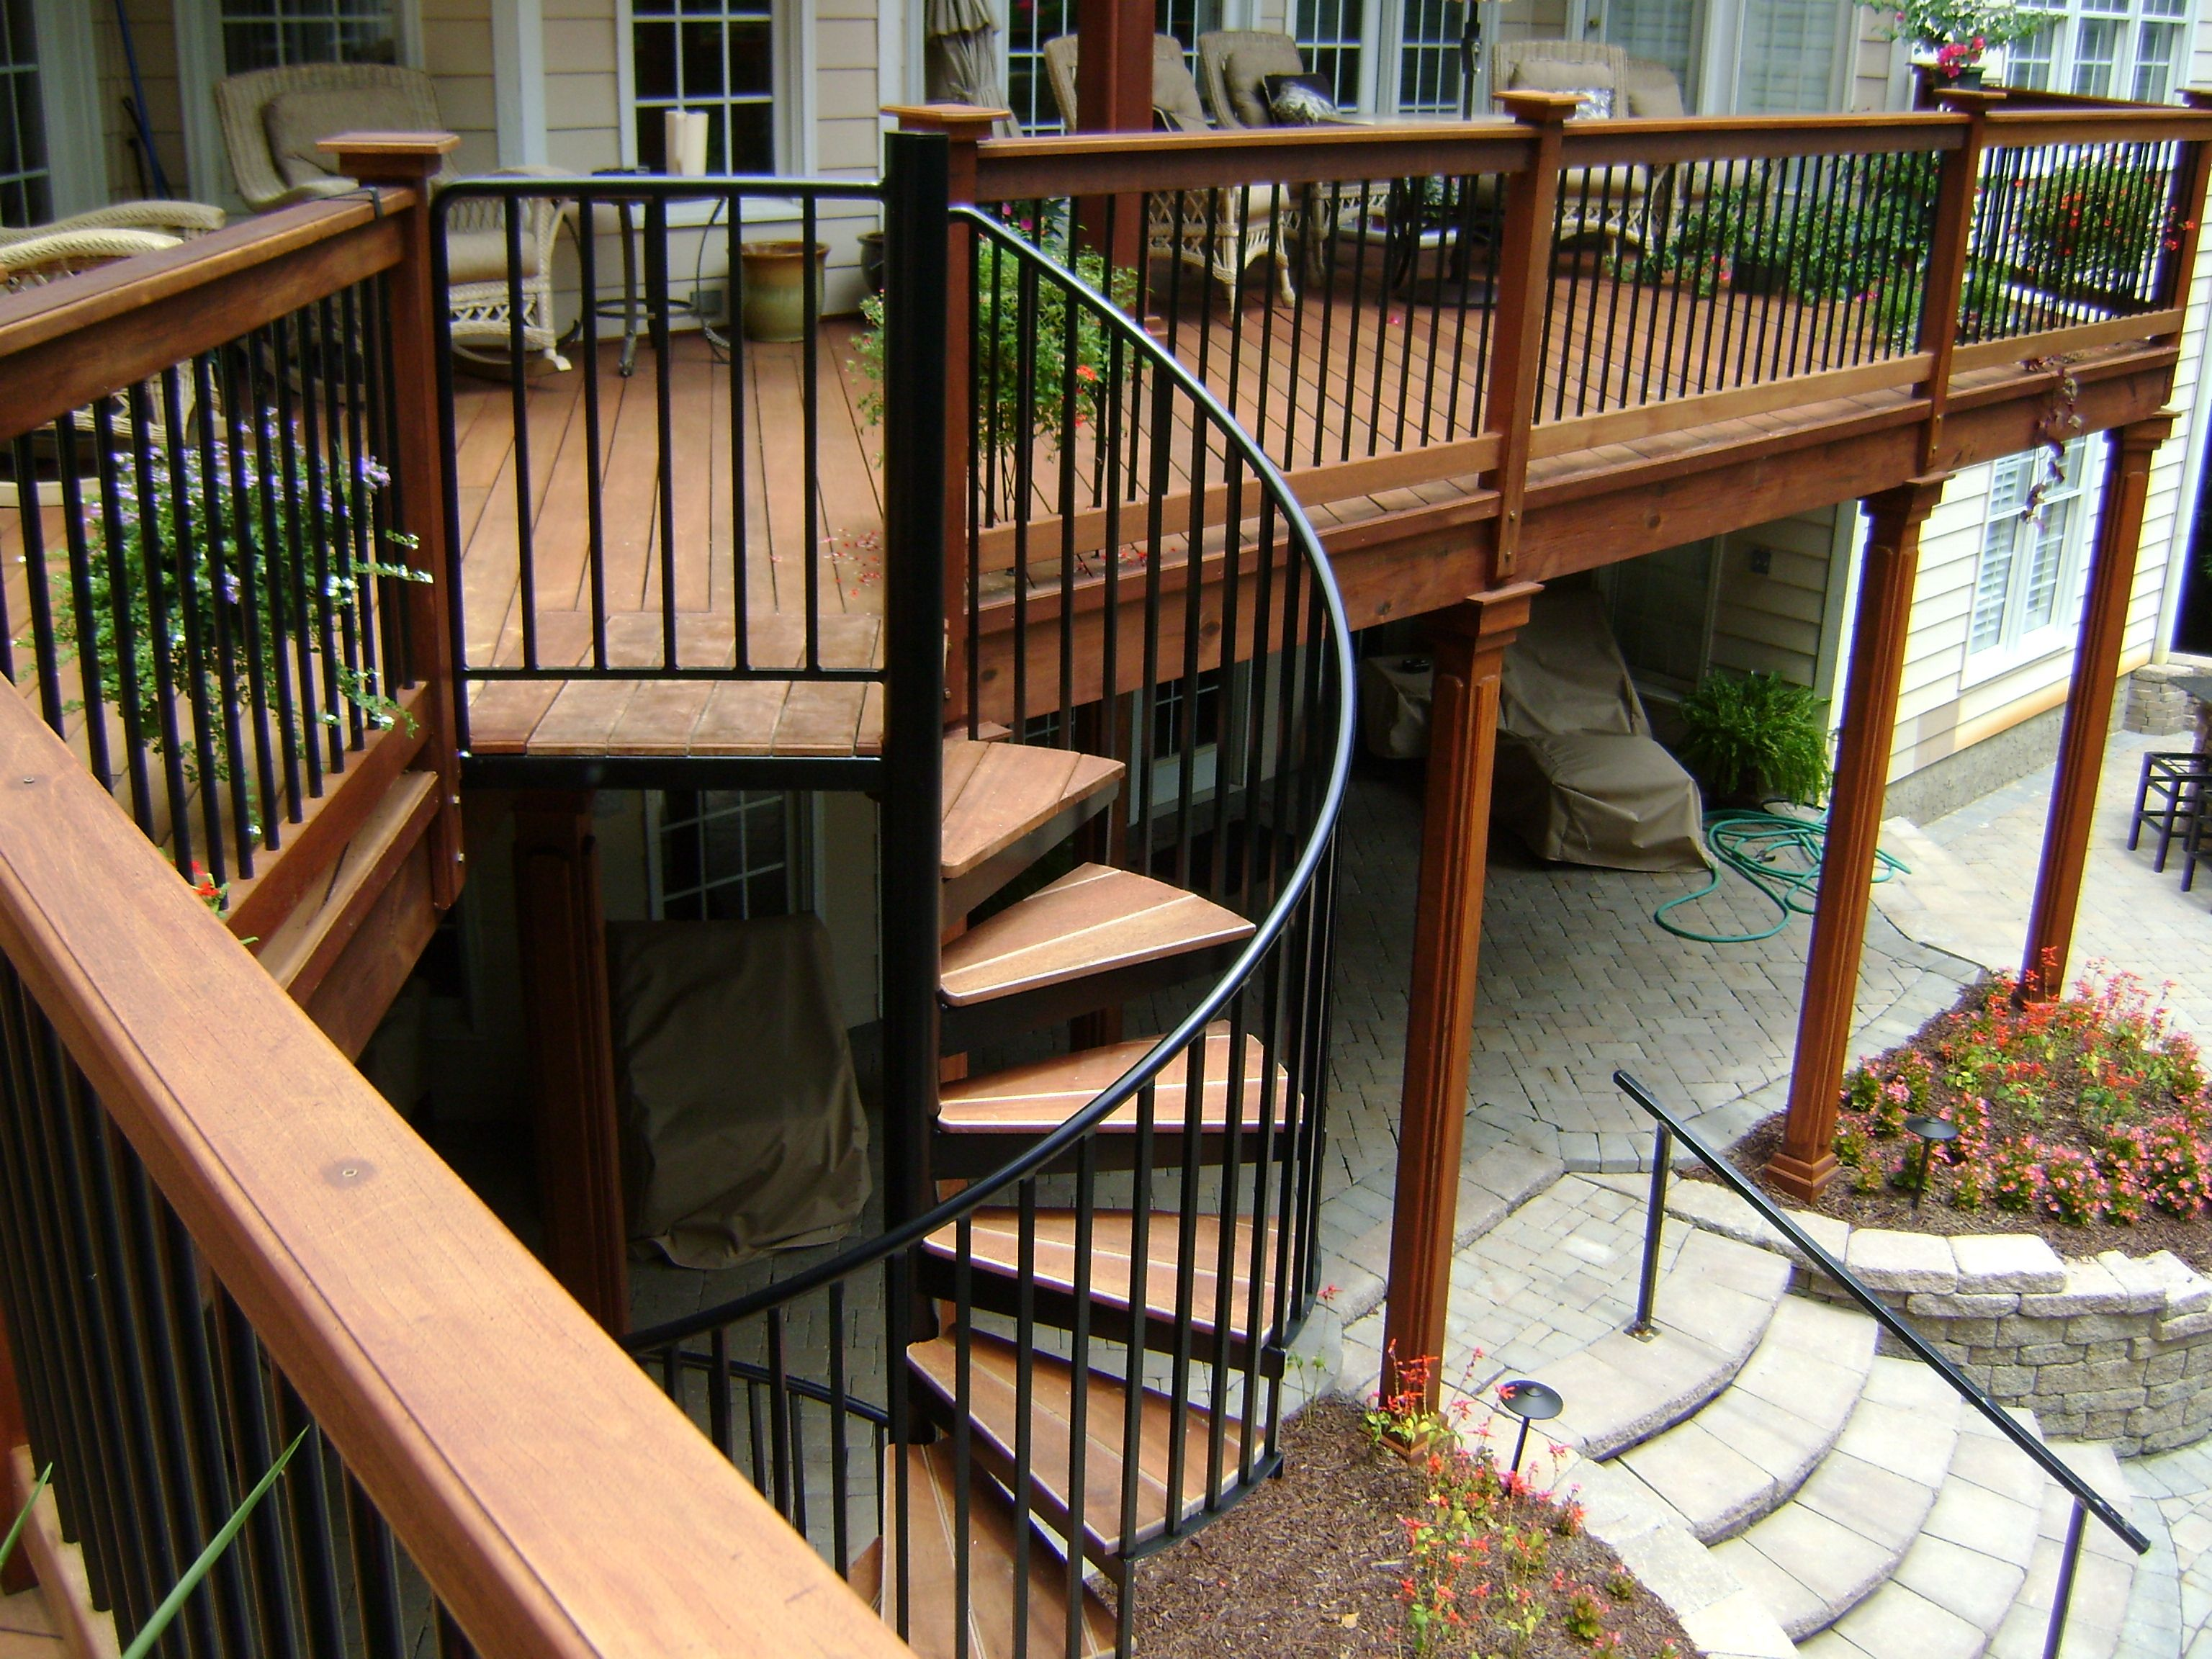 Second Story Wood Deck With Spiral Staircase And Stone Patio